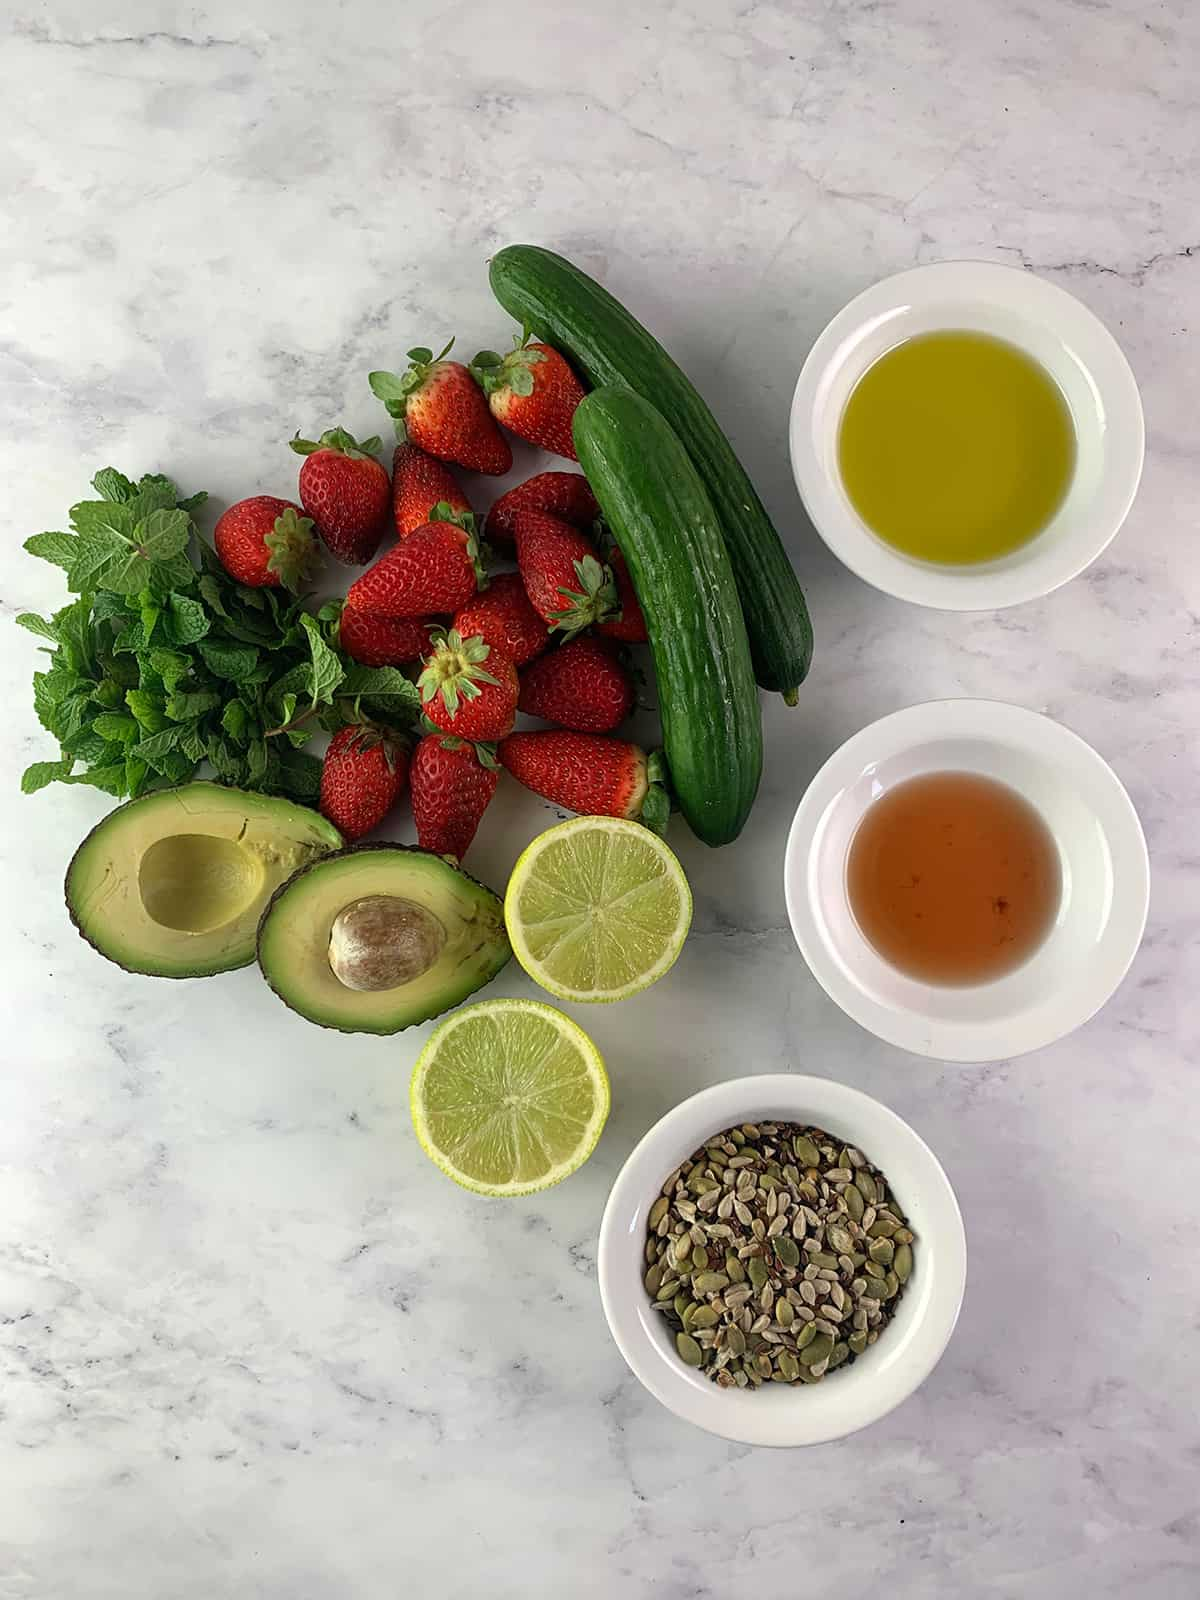 INGREDIENTS FOR CUCUMBER STRAWBERRY SALAD